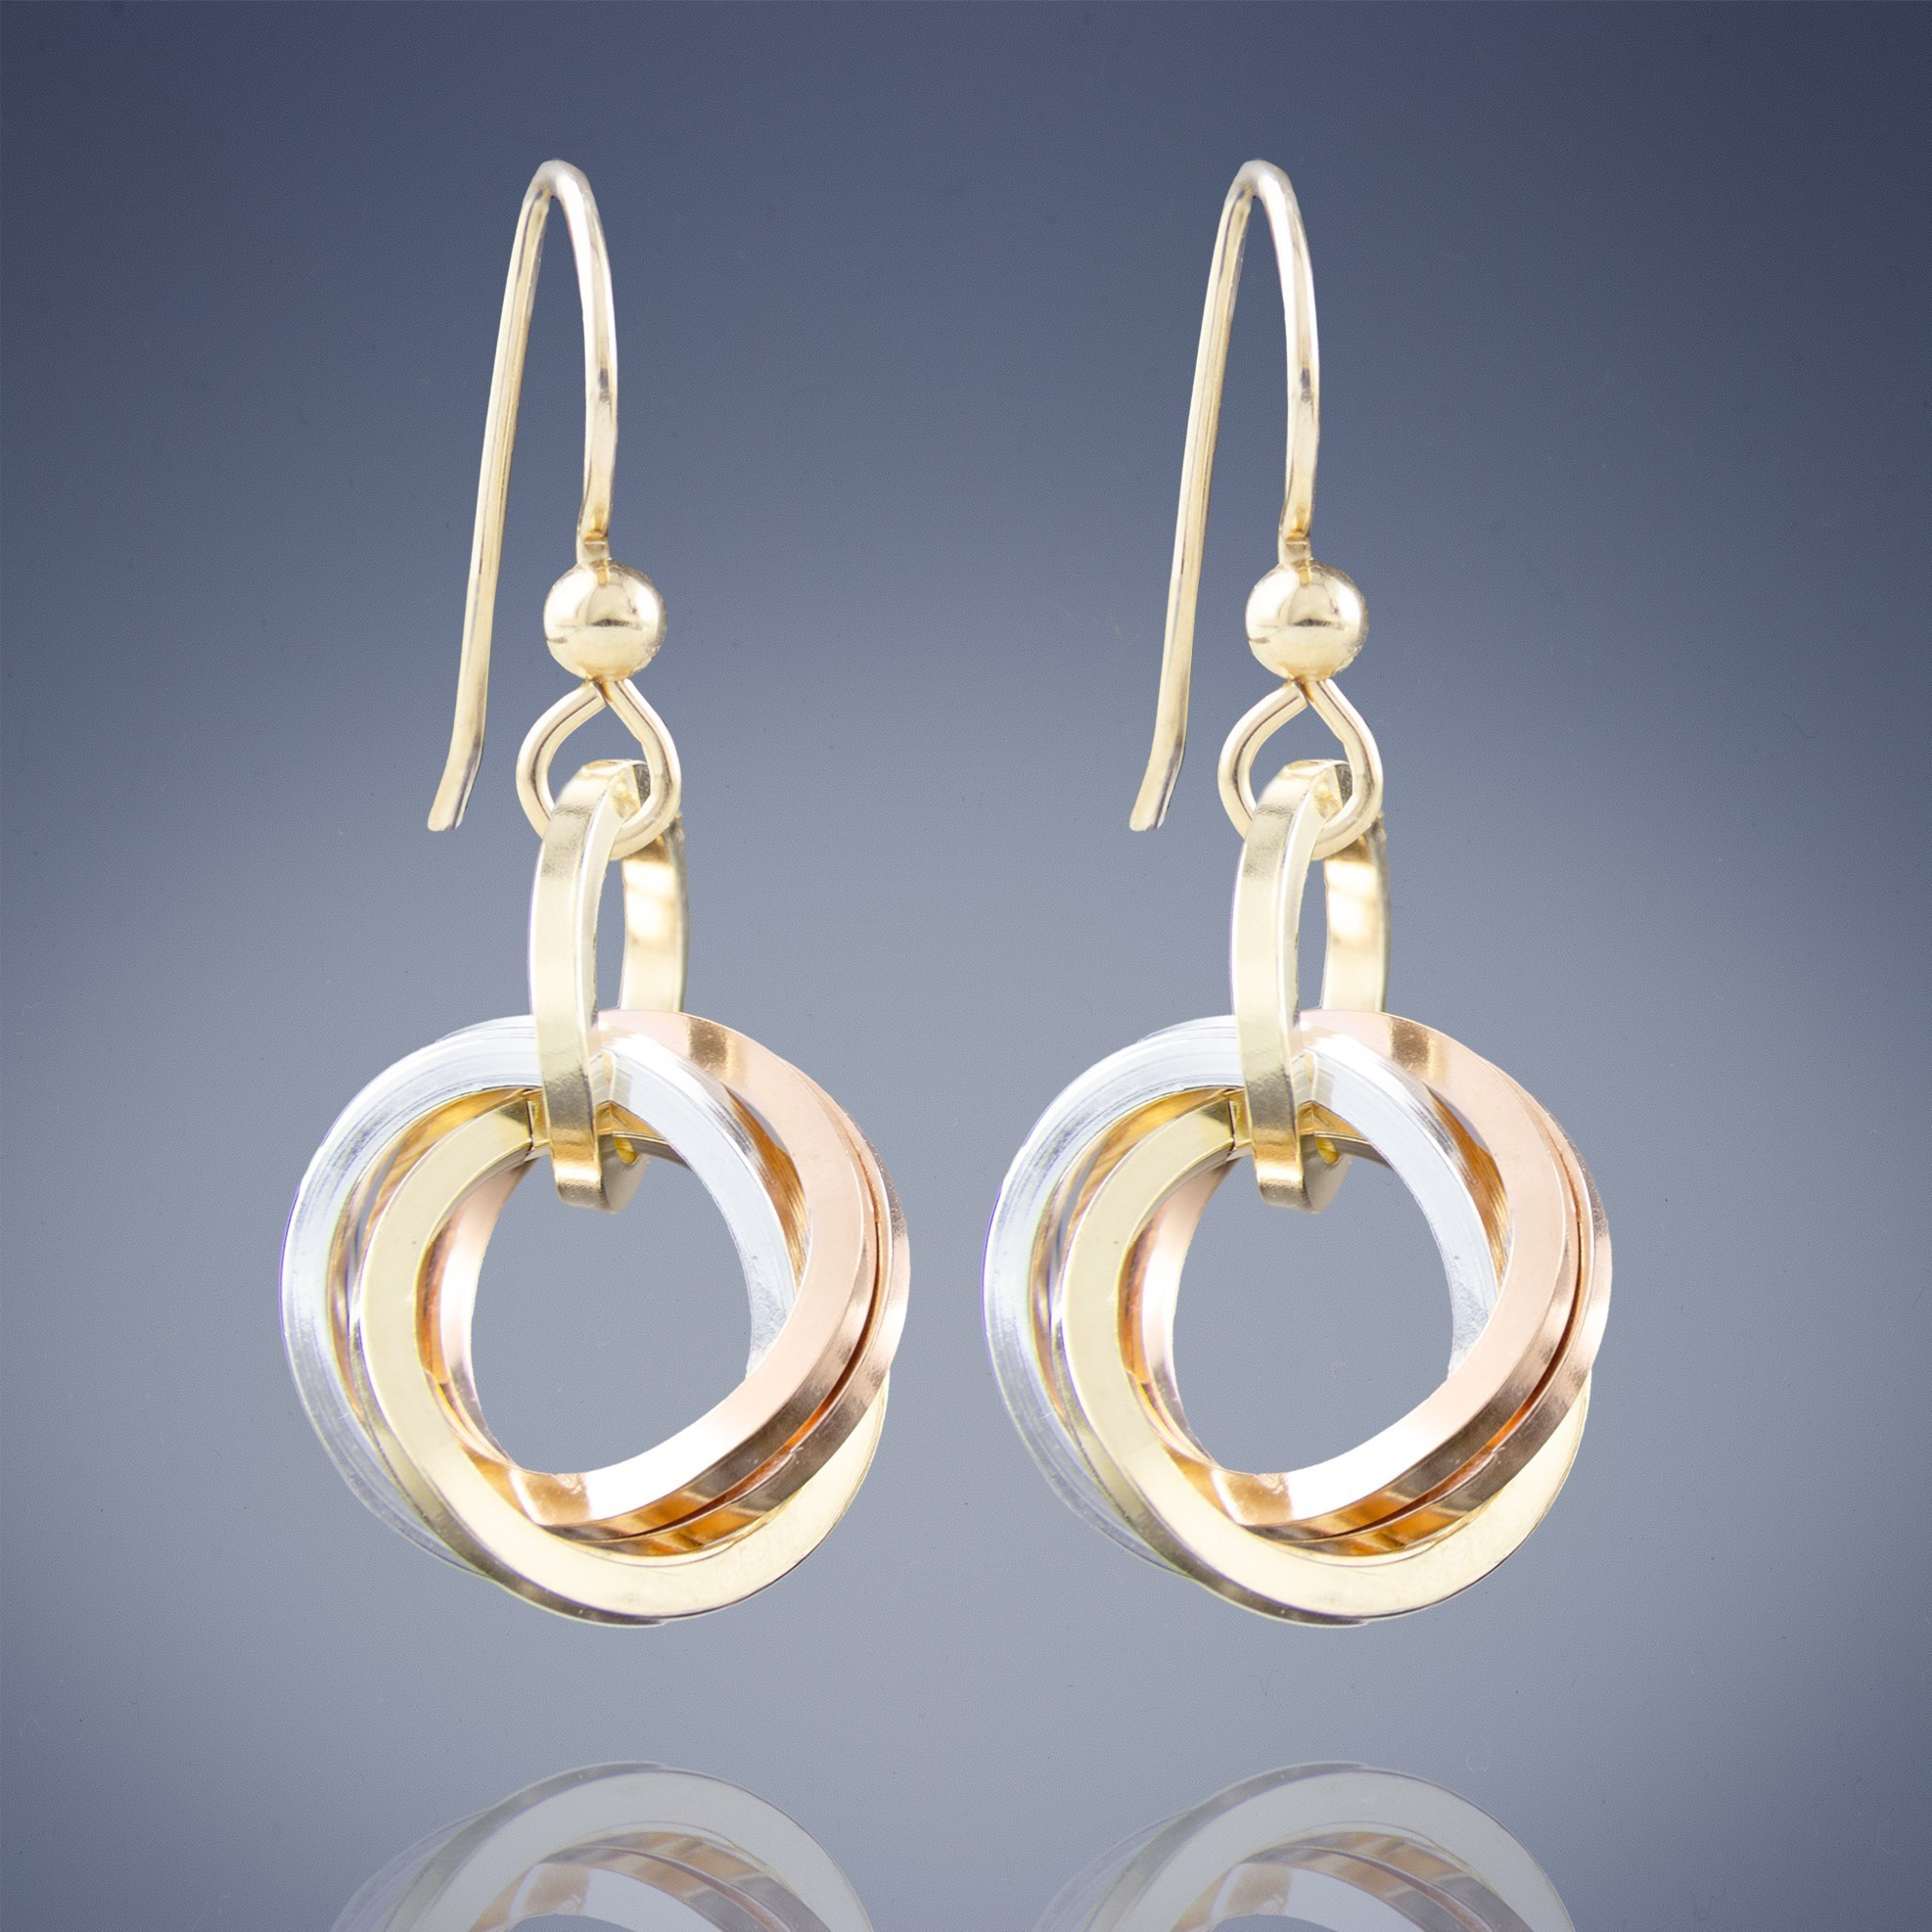 Handmade 925 Sterling Silver Mother and Child Knot Hoop Earring